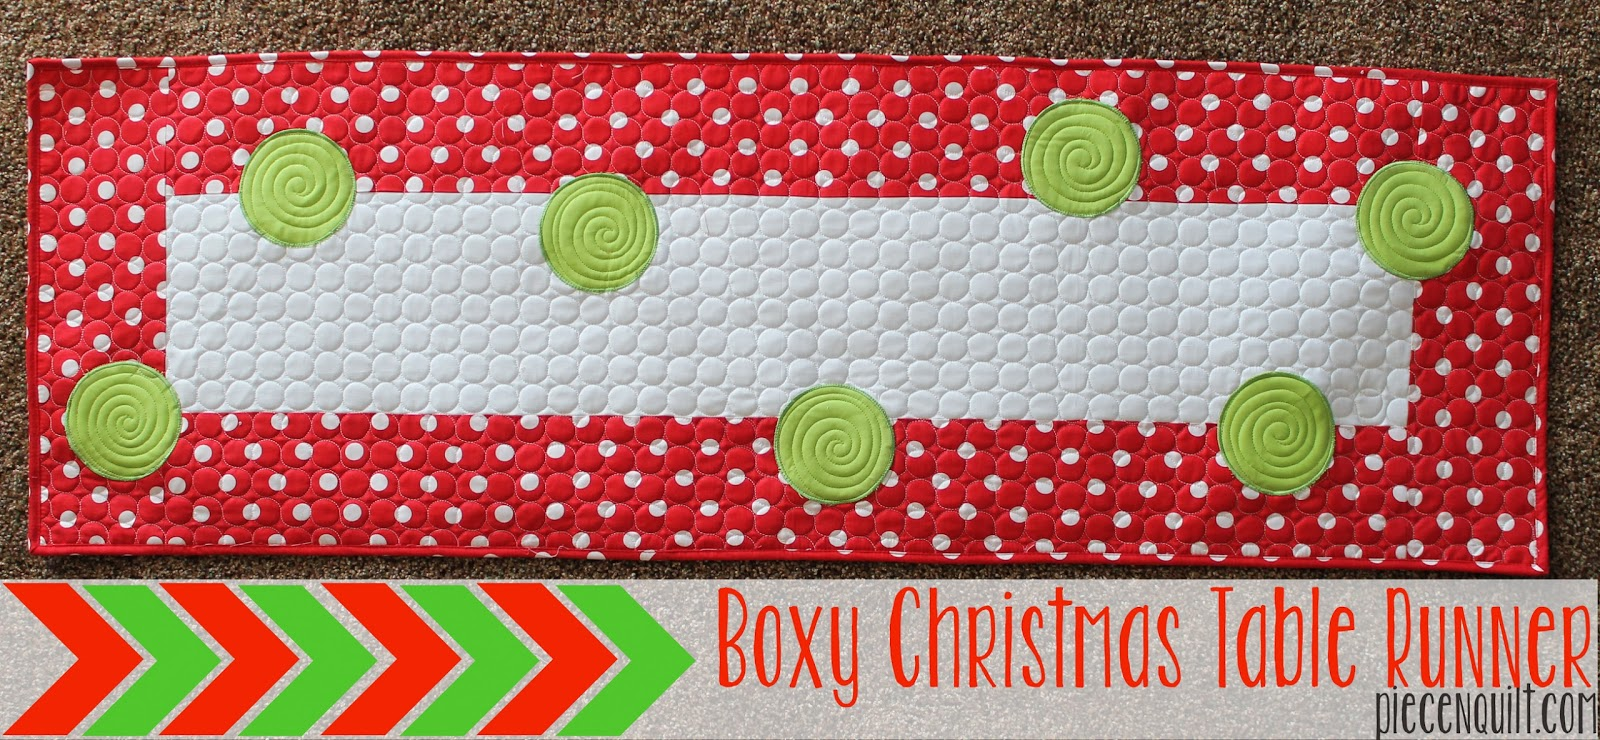 boxy christmas table runner tutorial